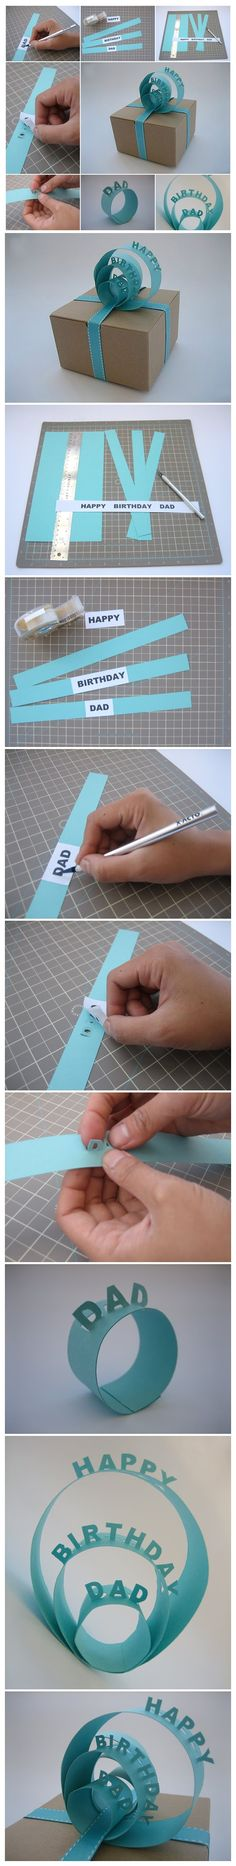 How to Make 3D Sign Gift Topperhttp://coolcreativity.com/handcraft/how-to-make-3d-sign-gift-topper/